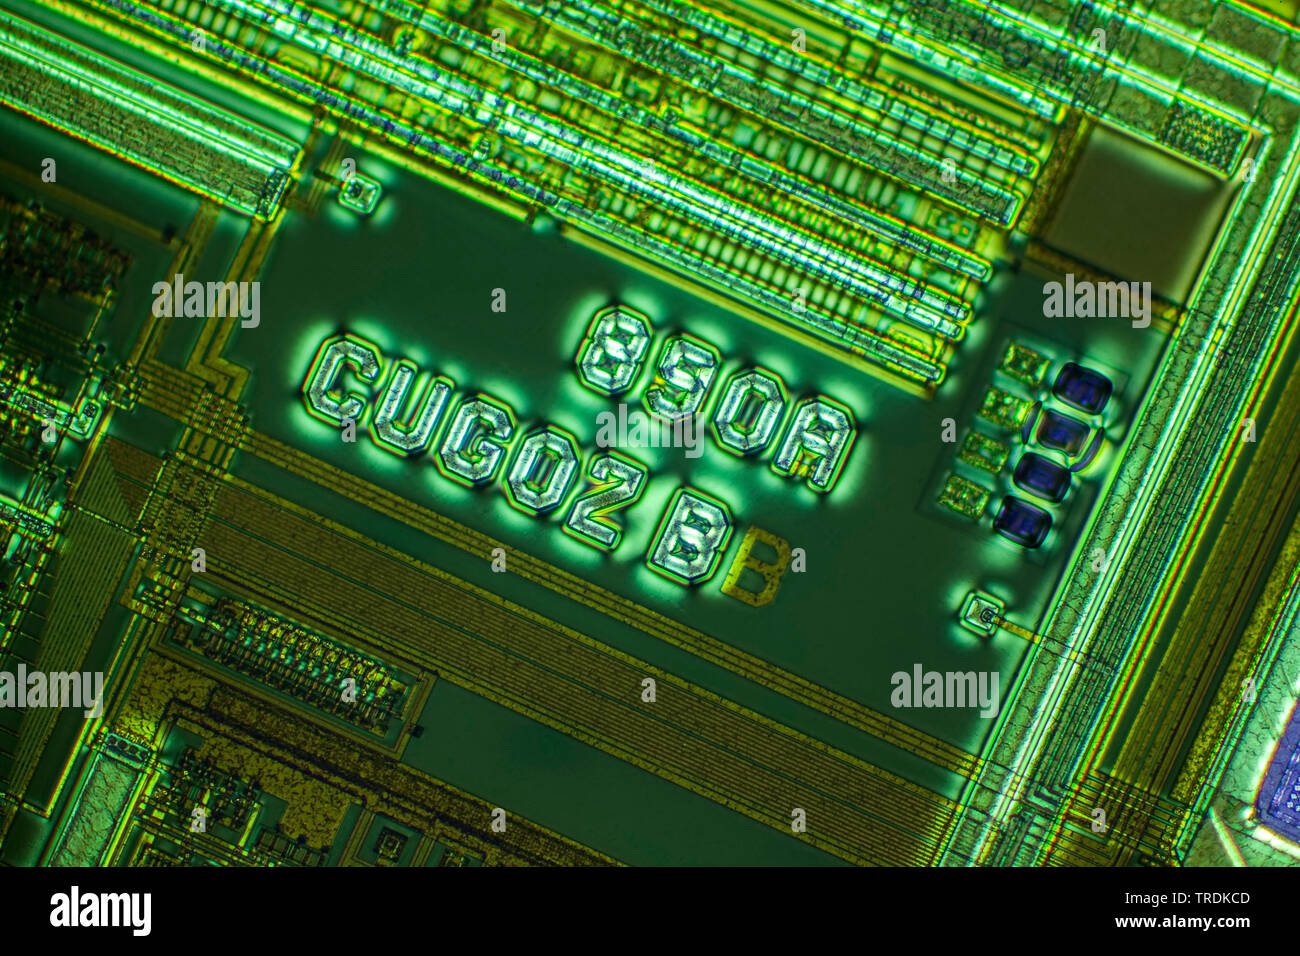 Semiconductor Wafer Stock Photos & Semiconductor Wafer Stock